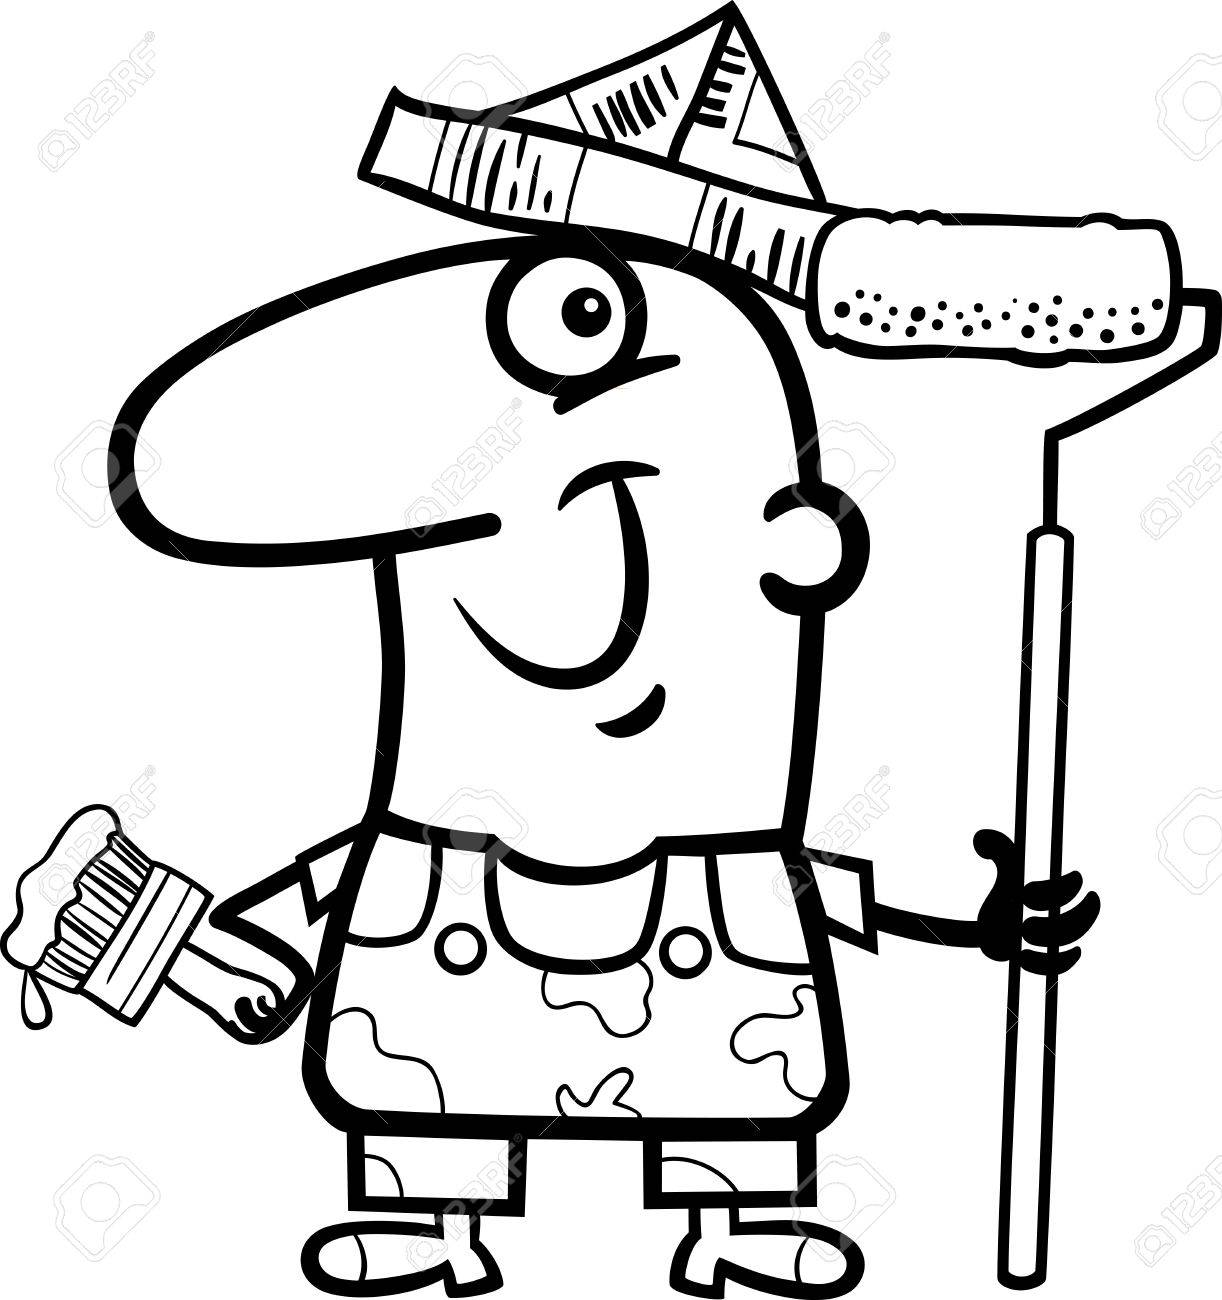 black and white cartoon illustration of funny house painter worker Black and White Cartoon Jam black and white cartoon illustration of funny house painter worker for coloring book stock vector